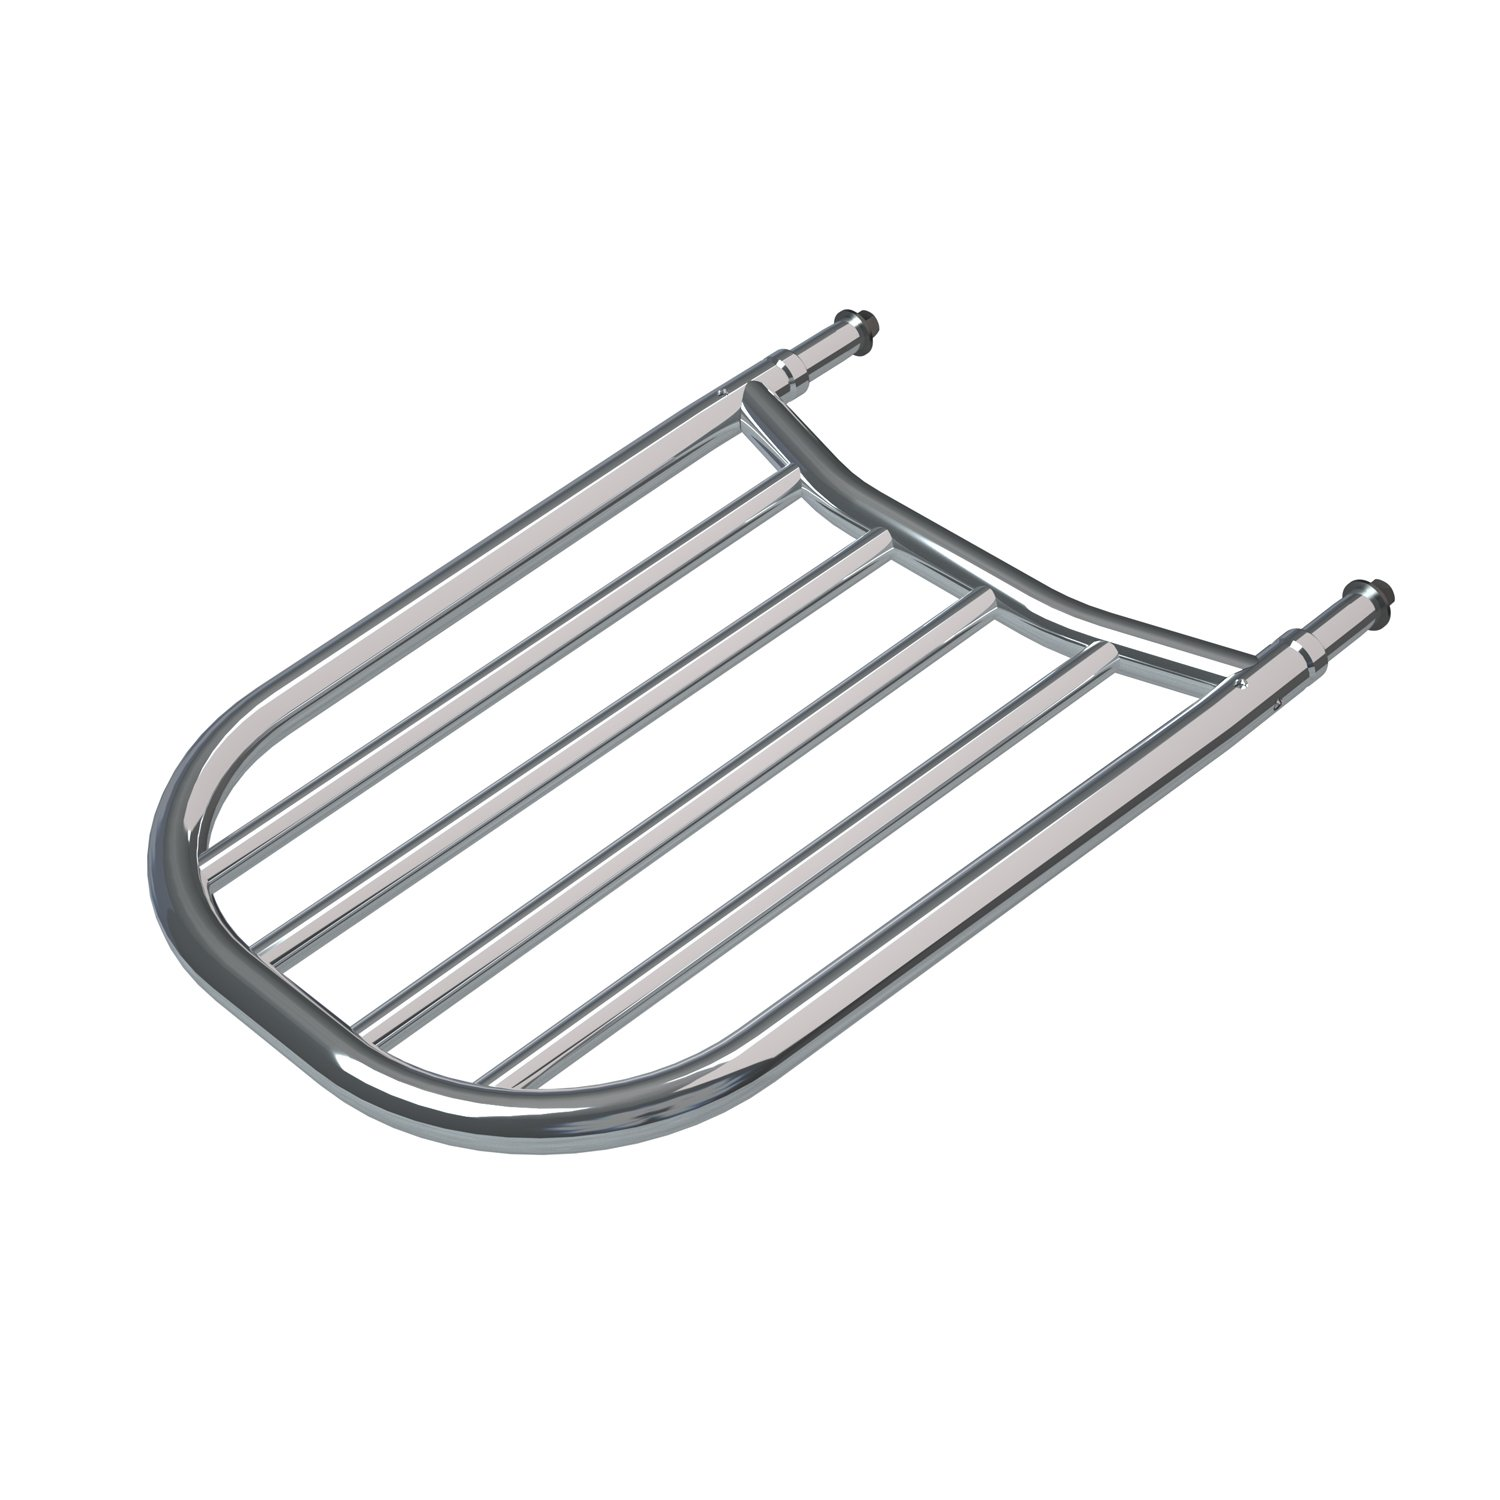 Sissy Bar Luggage Rack – Chrome